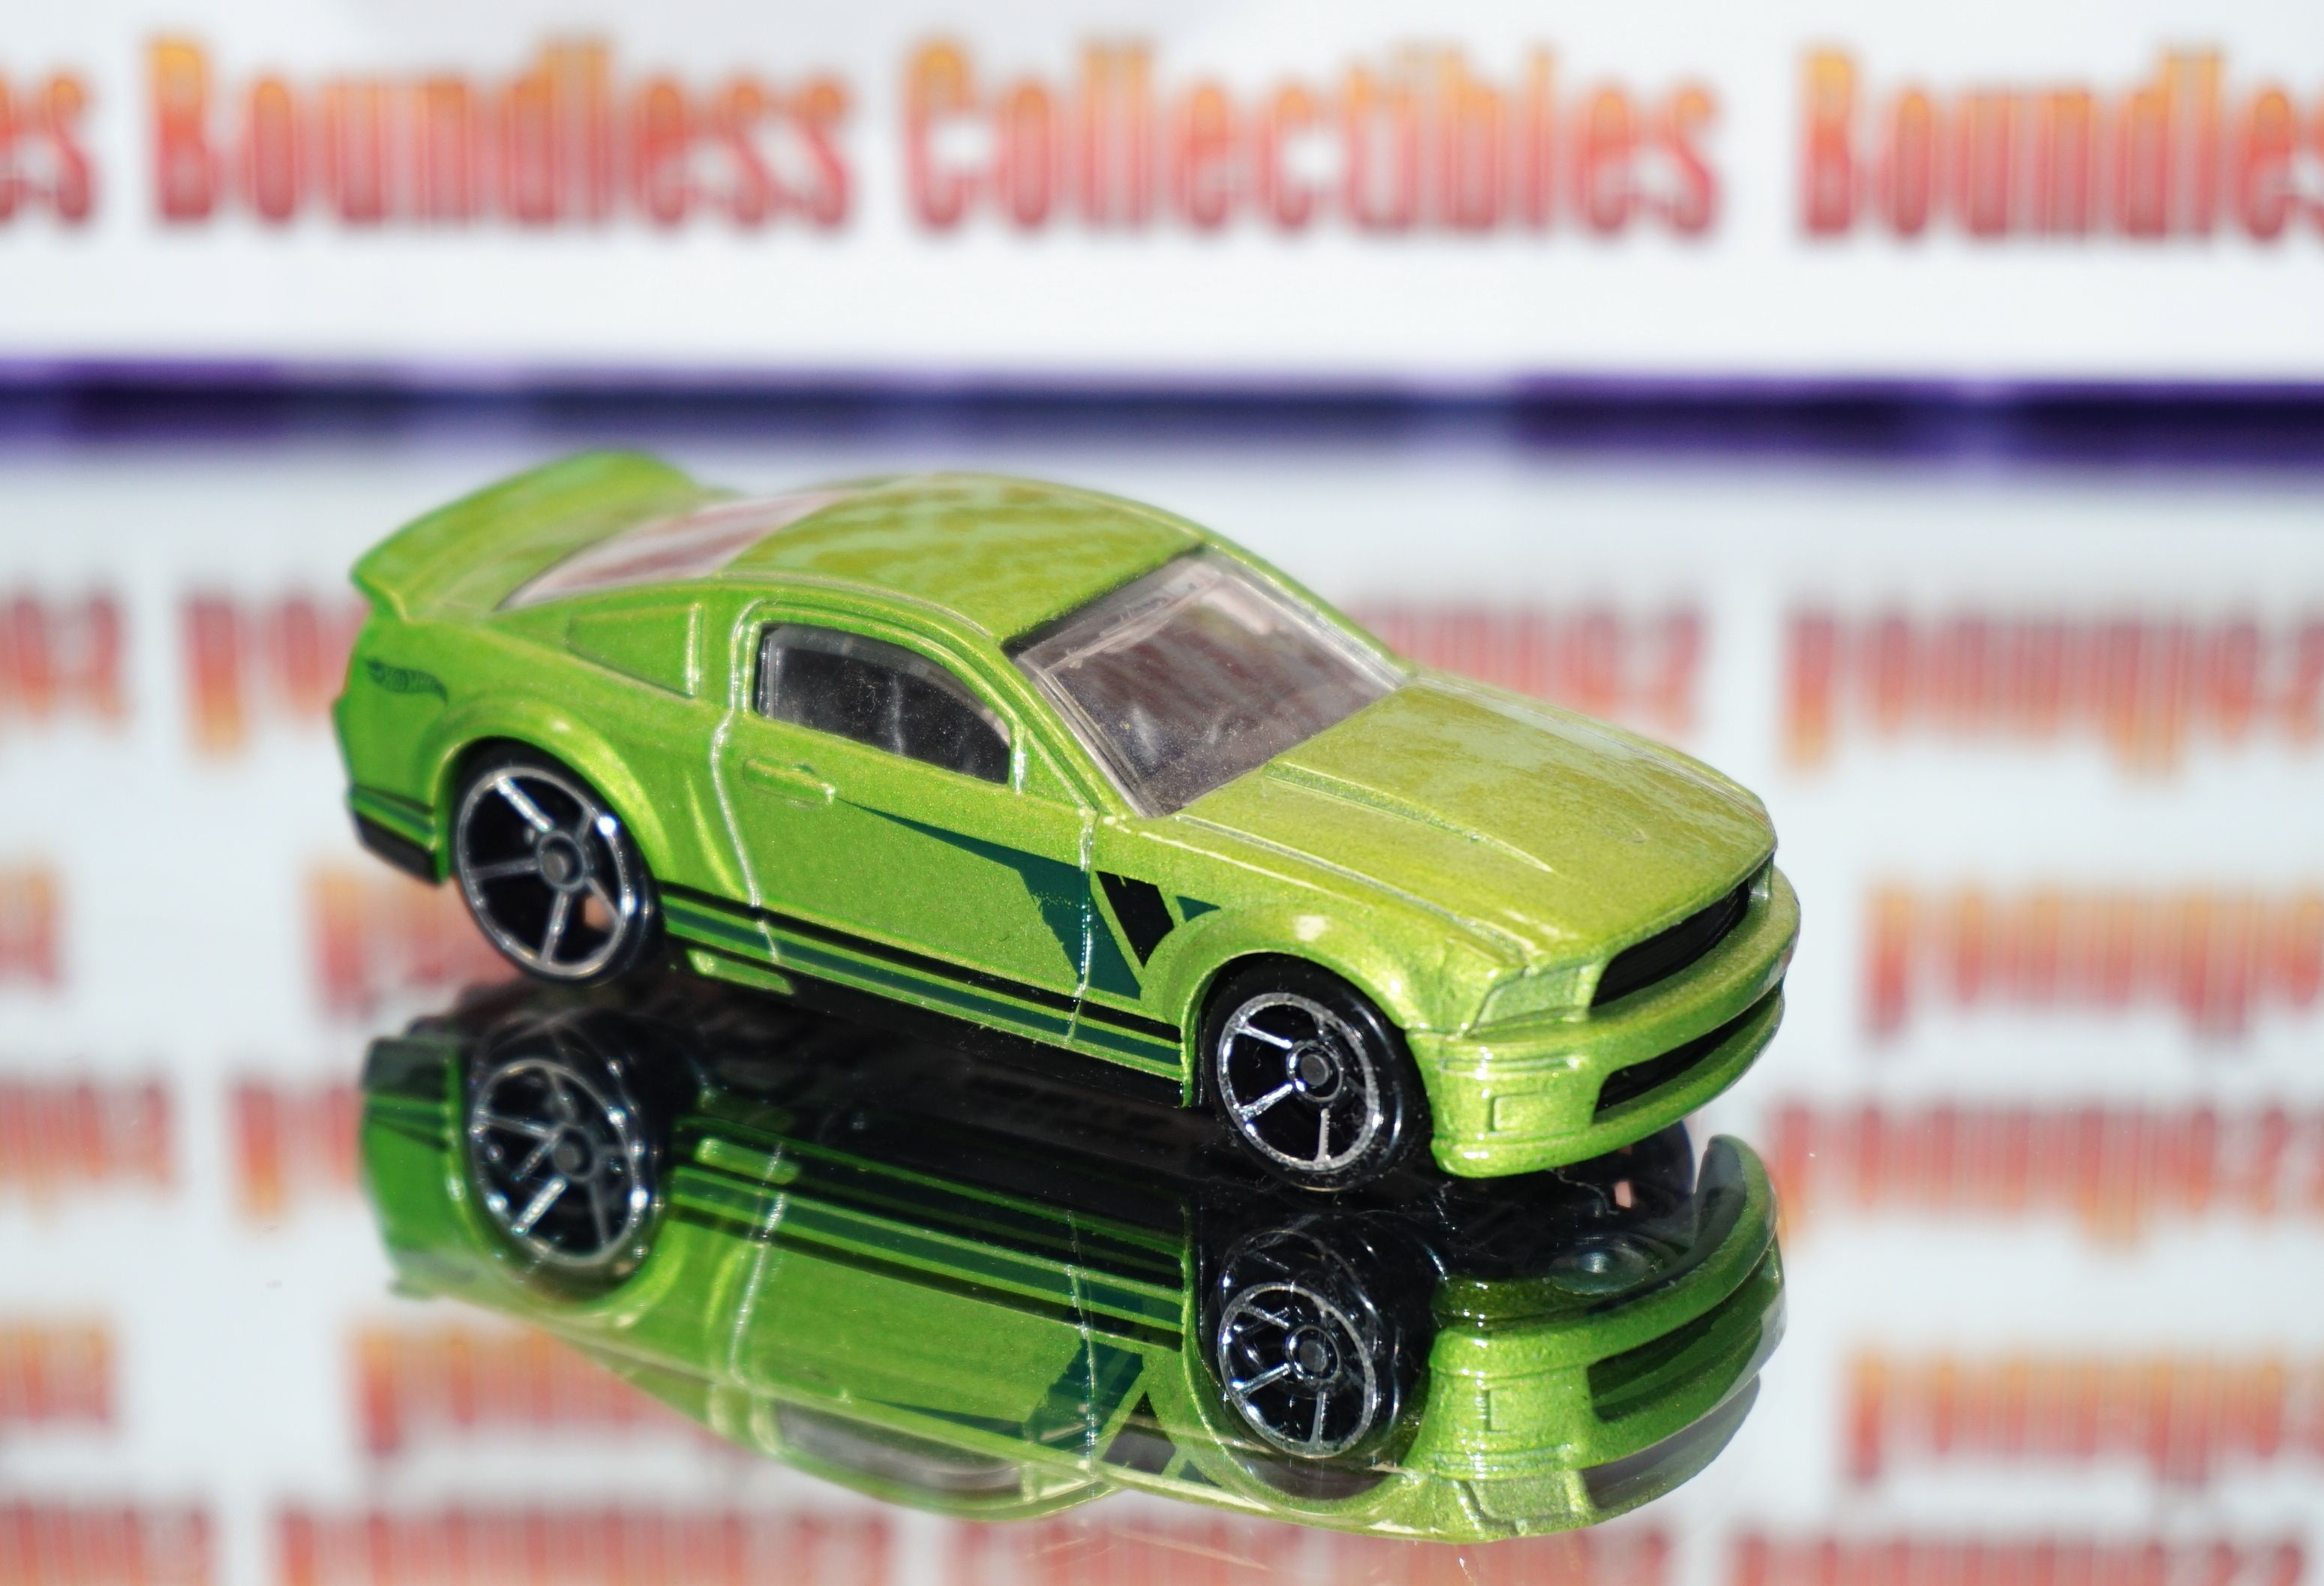 Hot Wheels 2007 07 Ford Mustang Green Boundlesscollectibles Com